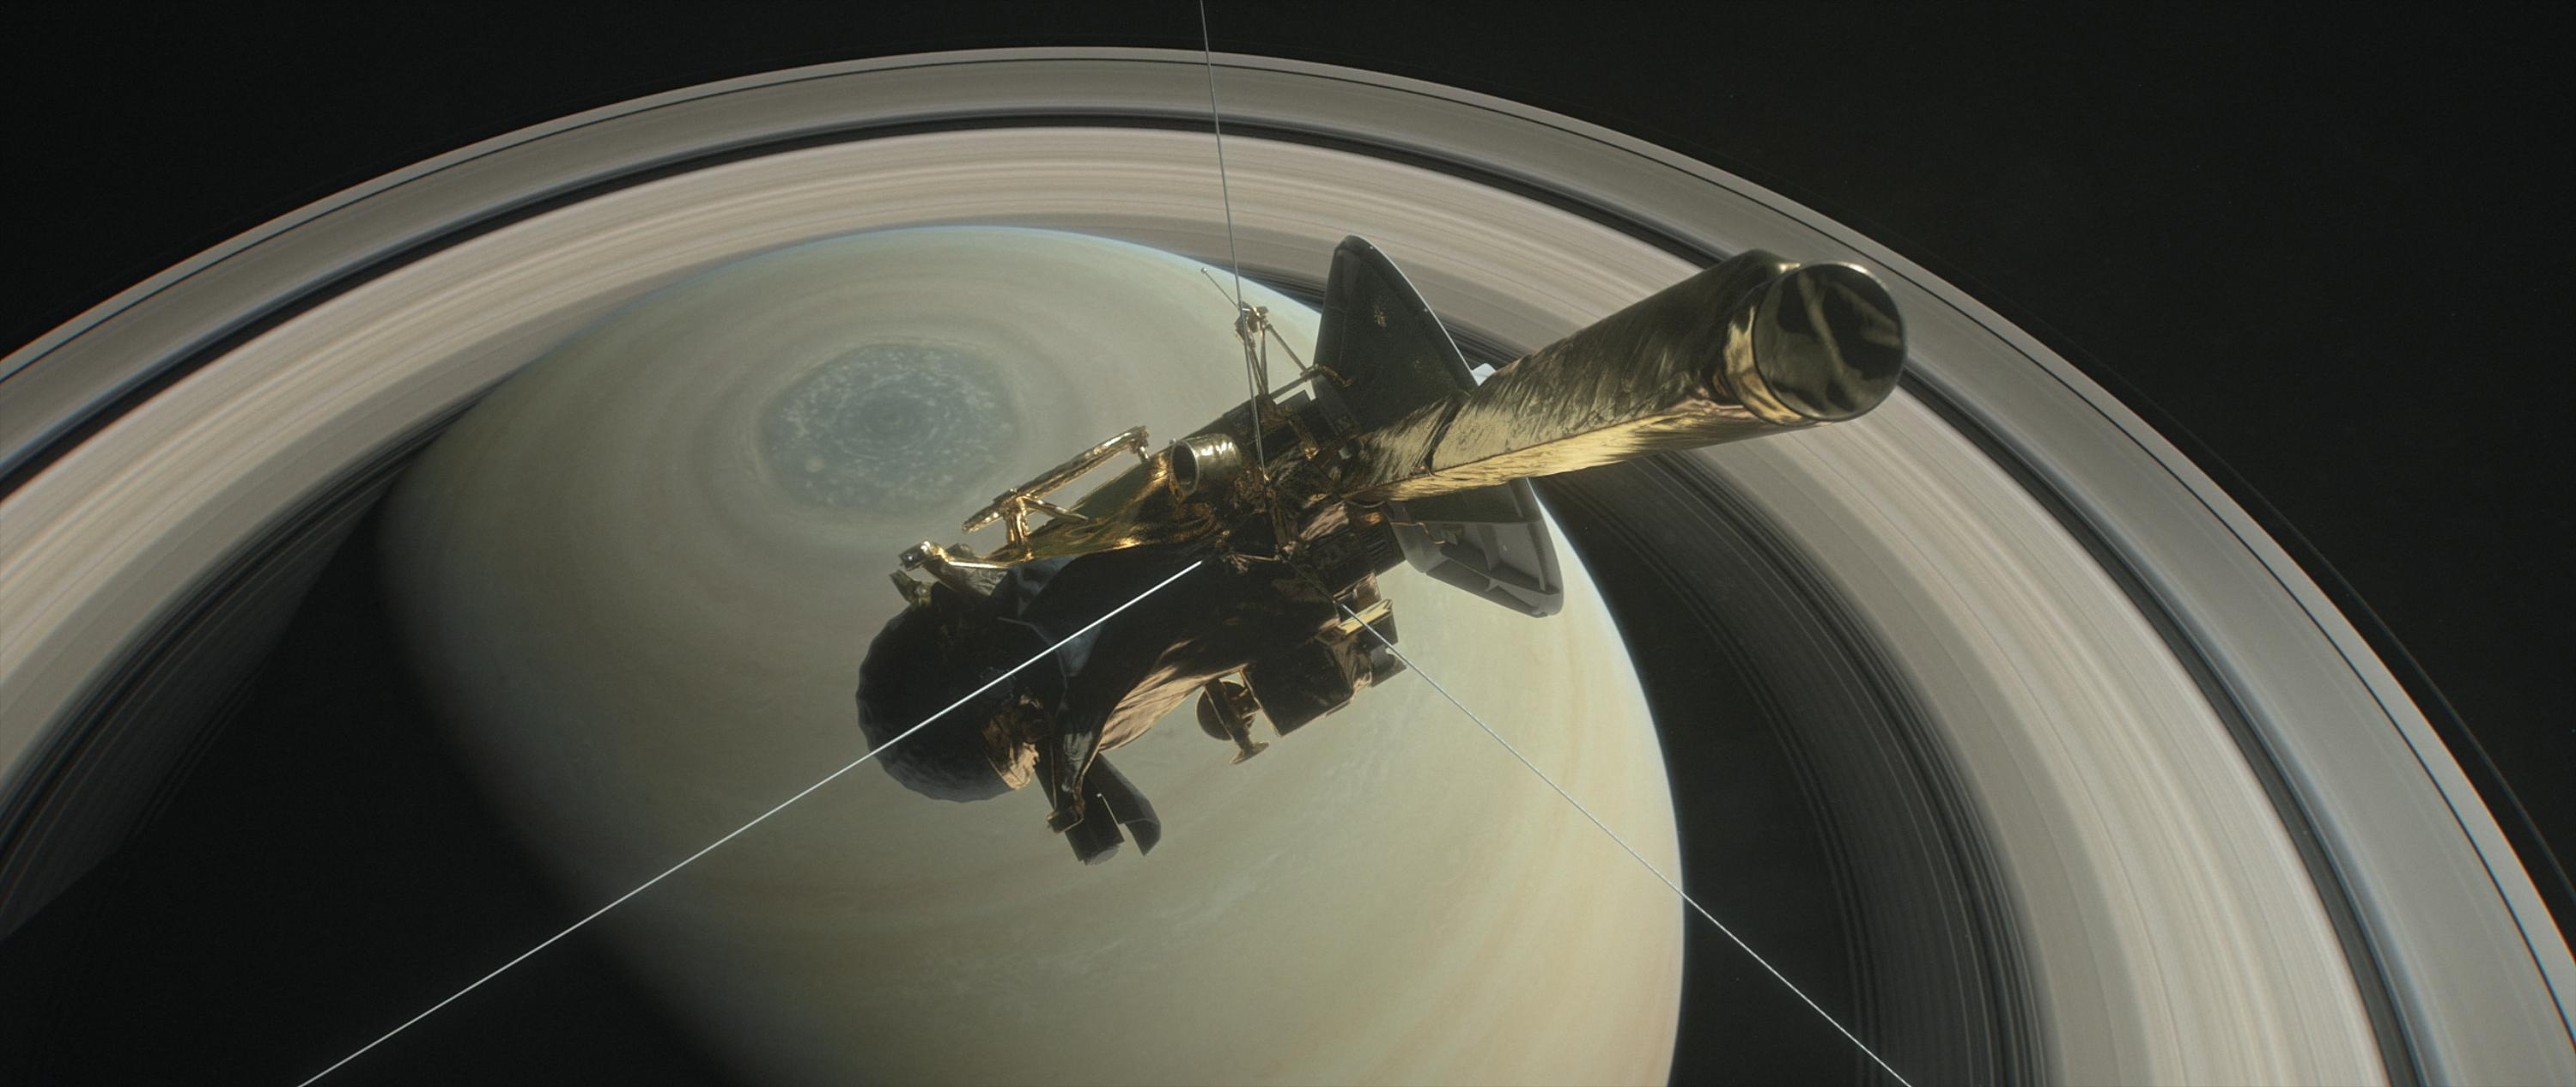 Cassini Spacecraft Makes Its Final Approach to Saturn | NASA